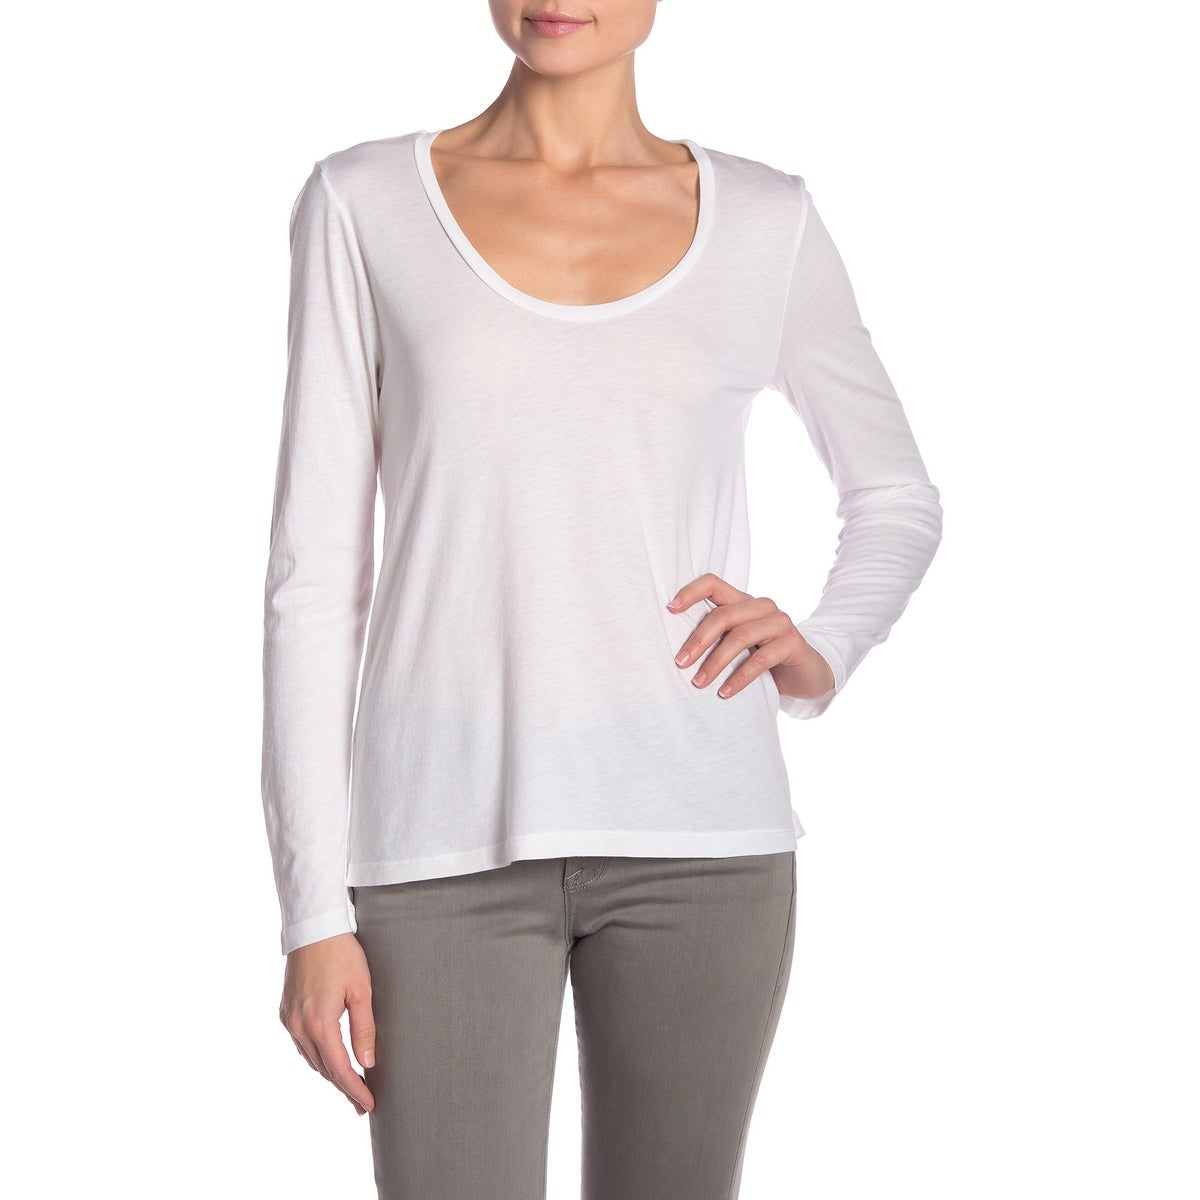 f5bc77f9eb26a2 Shop Splendid White Womens Size Medium M Long Sleeve Scoop Neck Top - Free  Shipping On Orders Over $45 - Overstock - 27656345